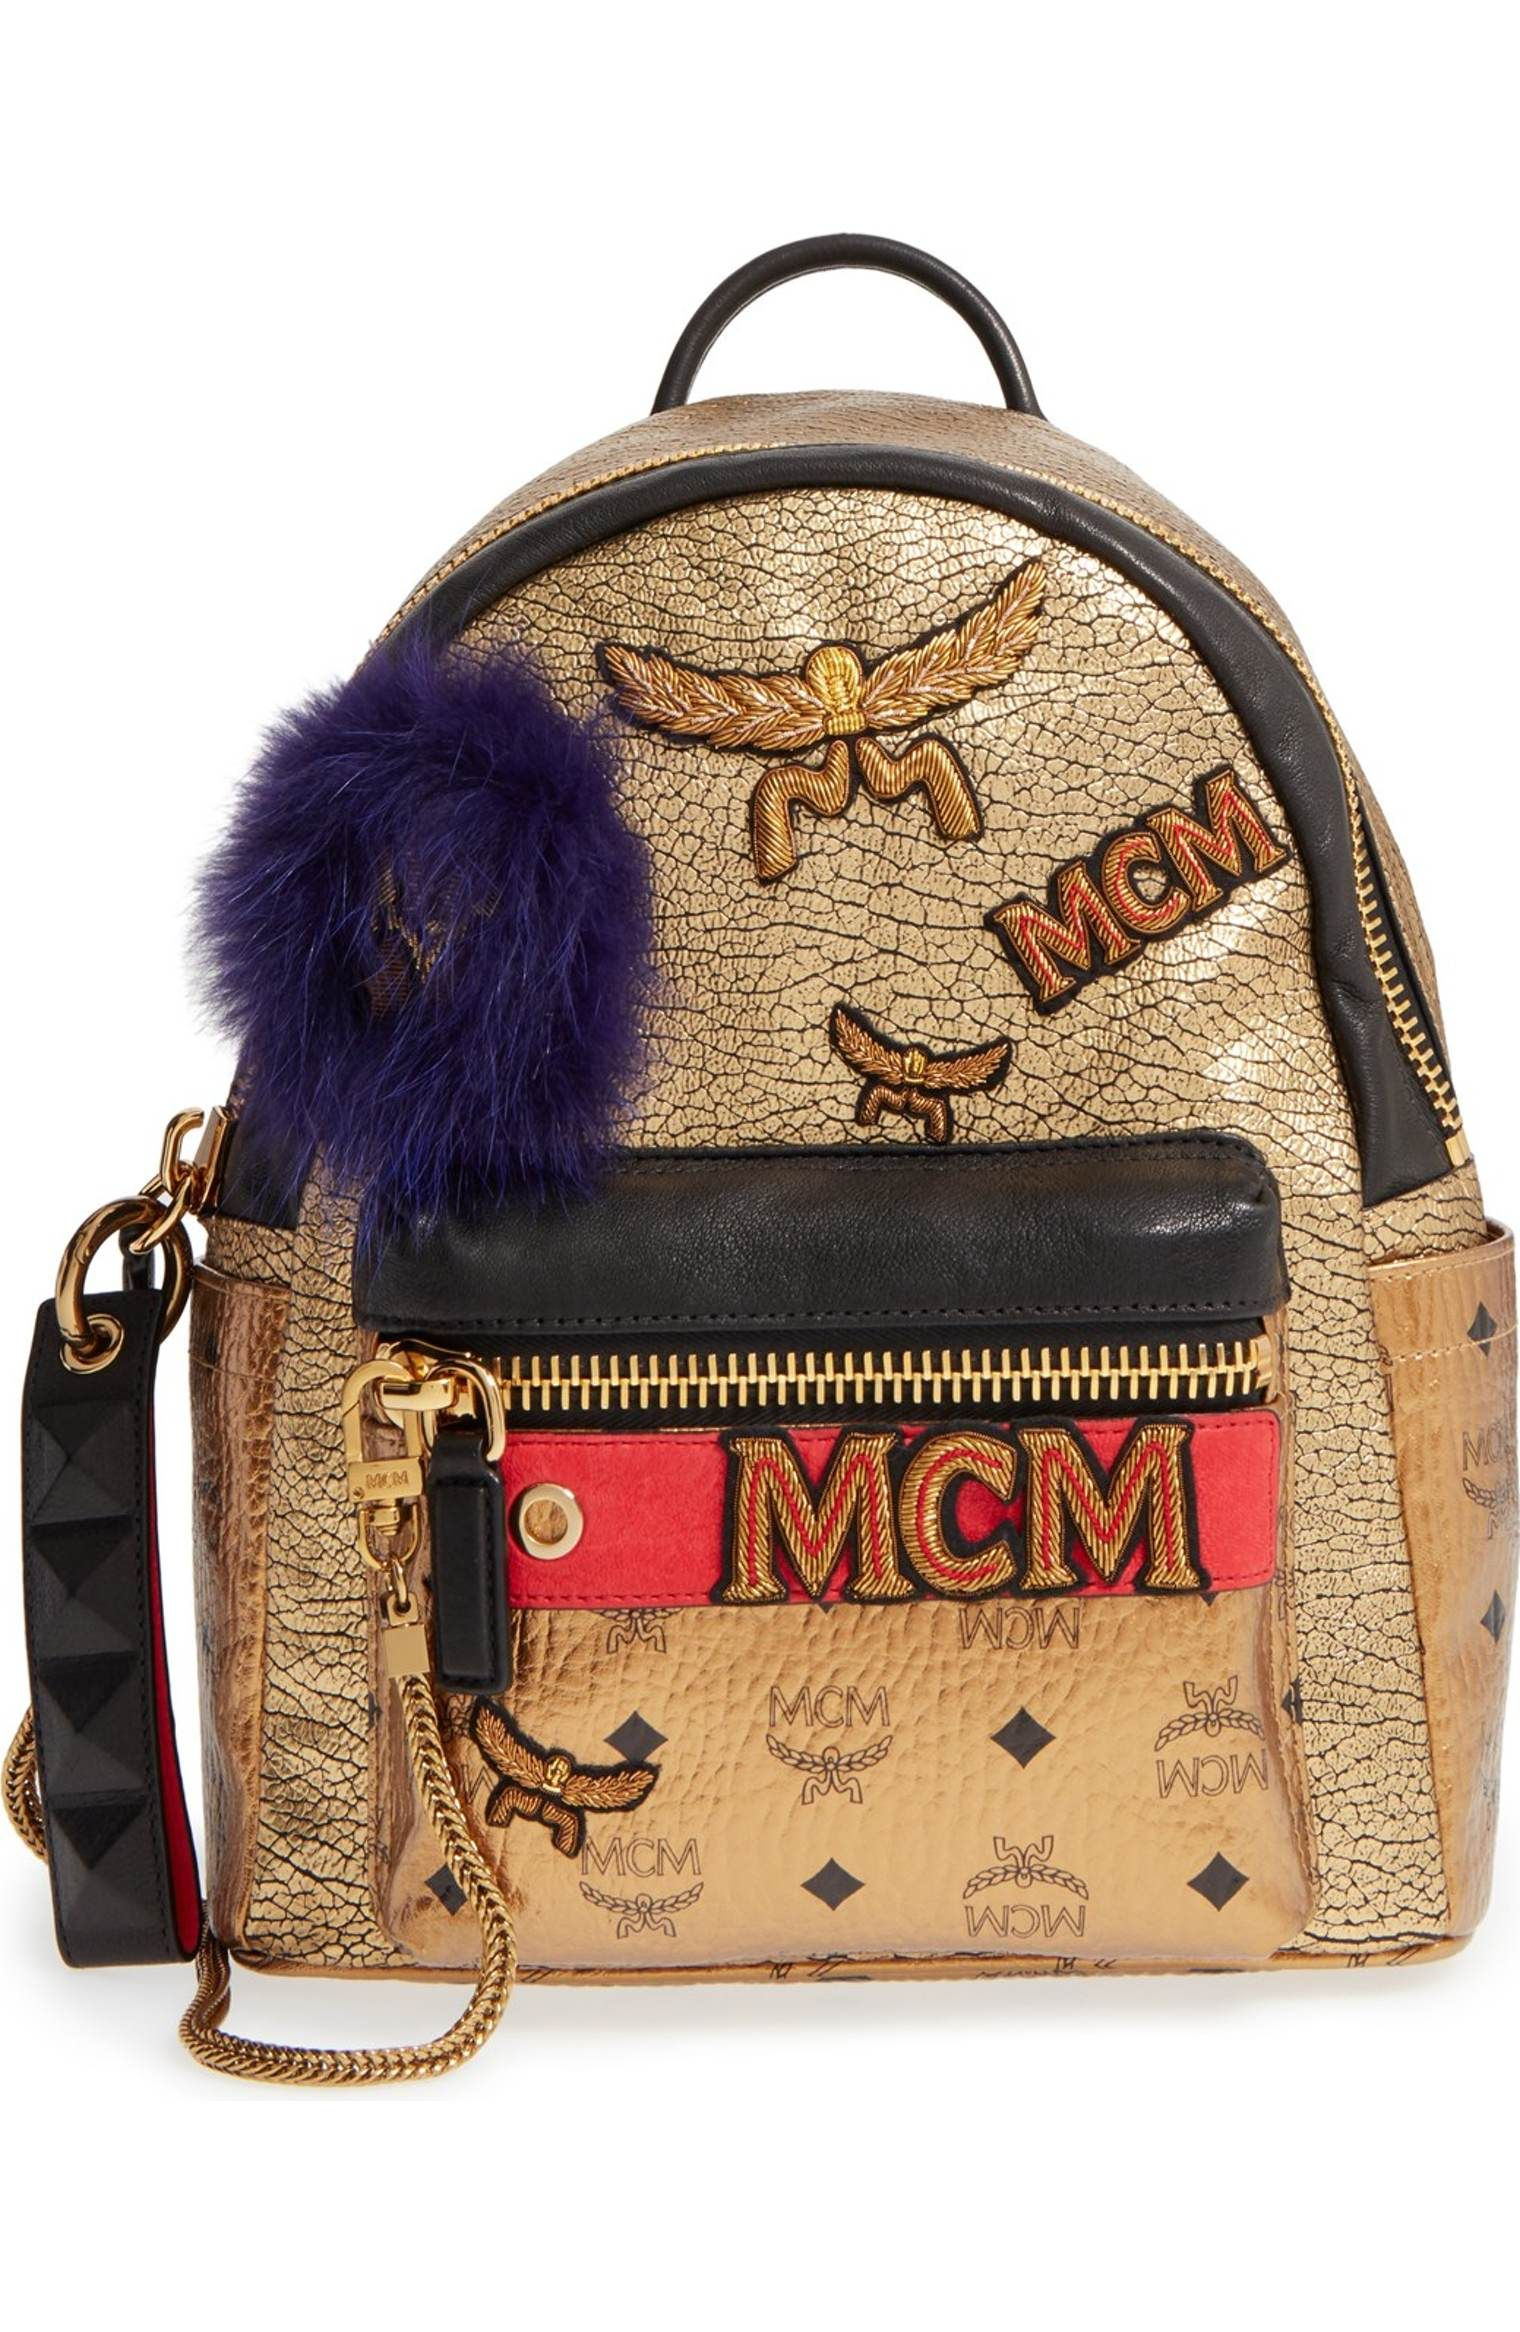 93d643401f ... Bags for Women. Main Image - MCM  Stark Insignia  Metallic Leather  Backpack with Genuine Fox Fur Trim